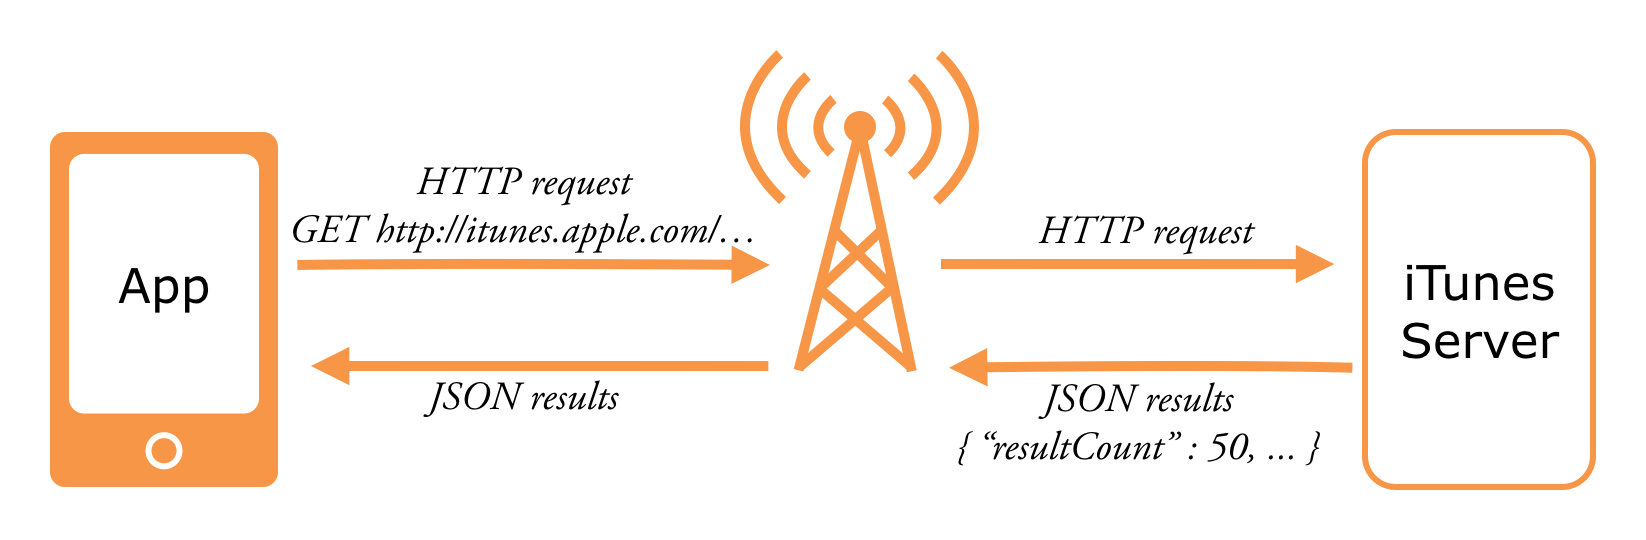 The HTTP requests fly over the network